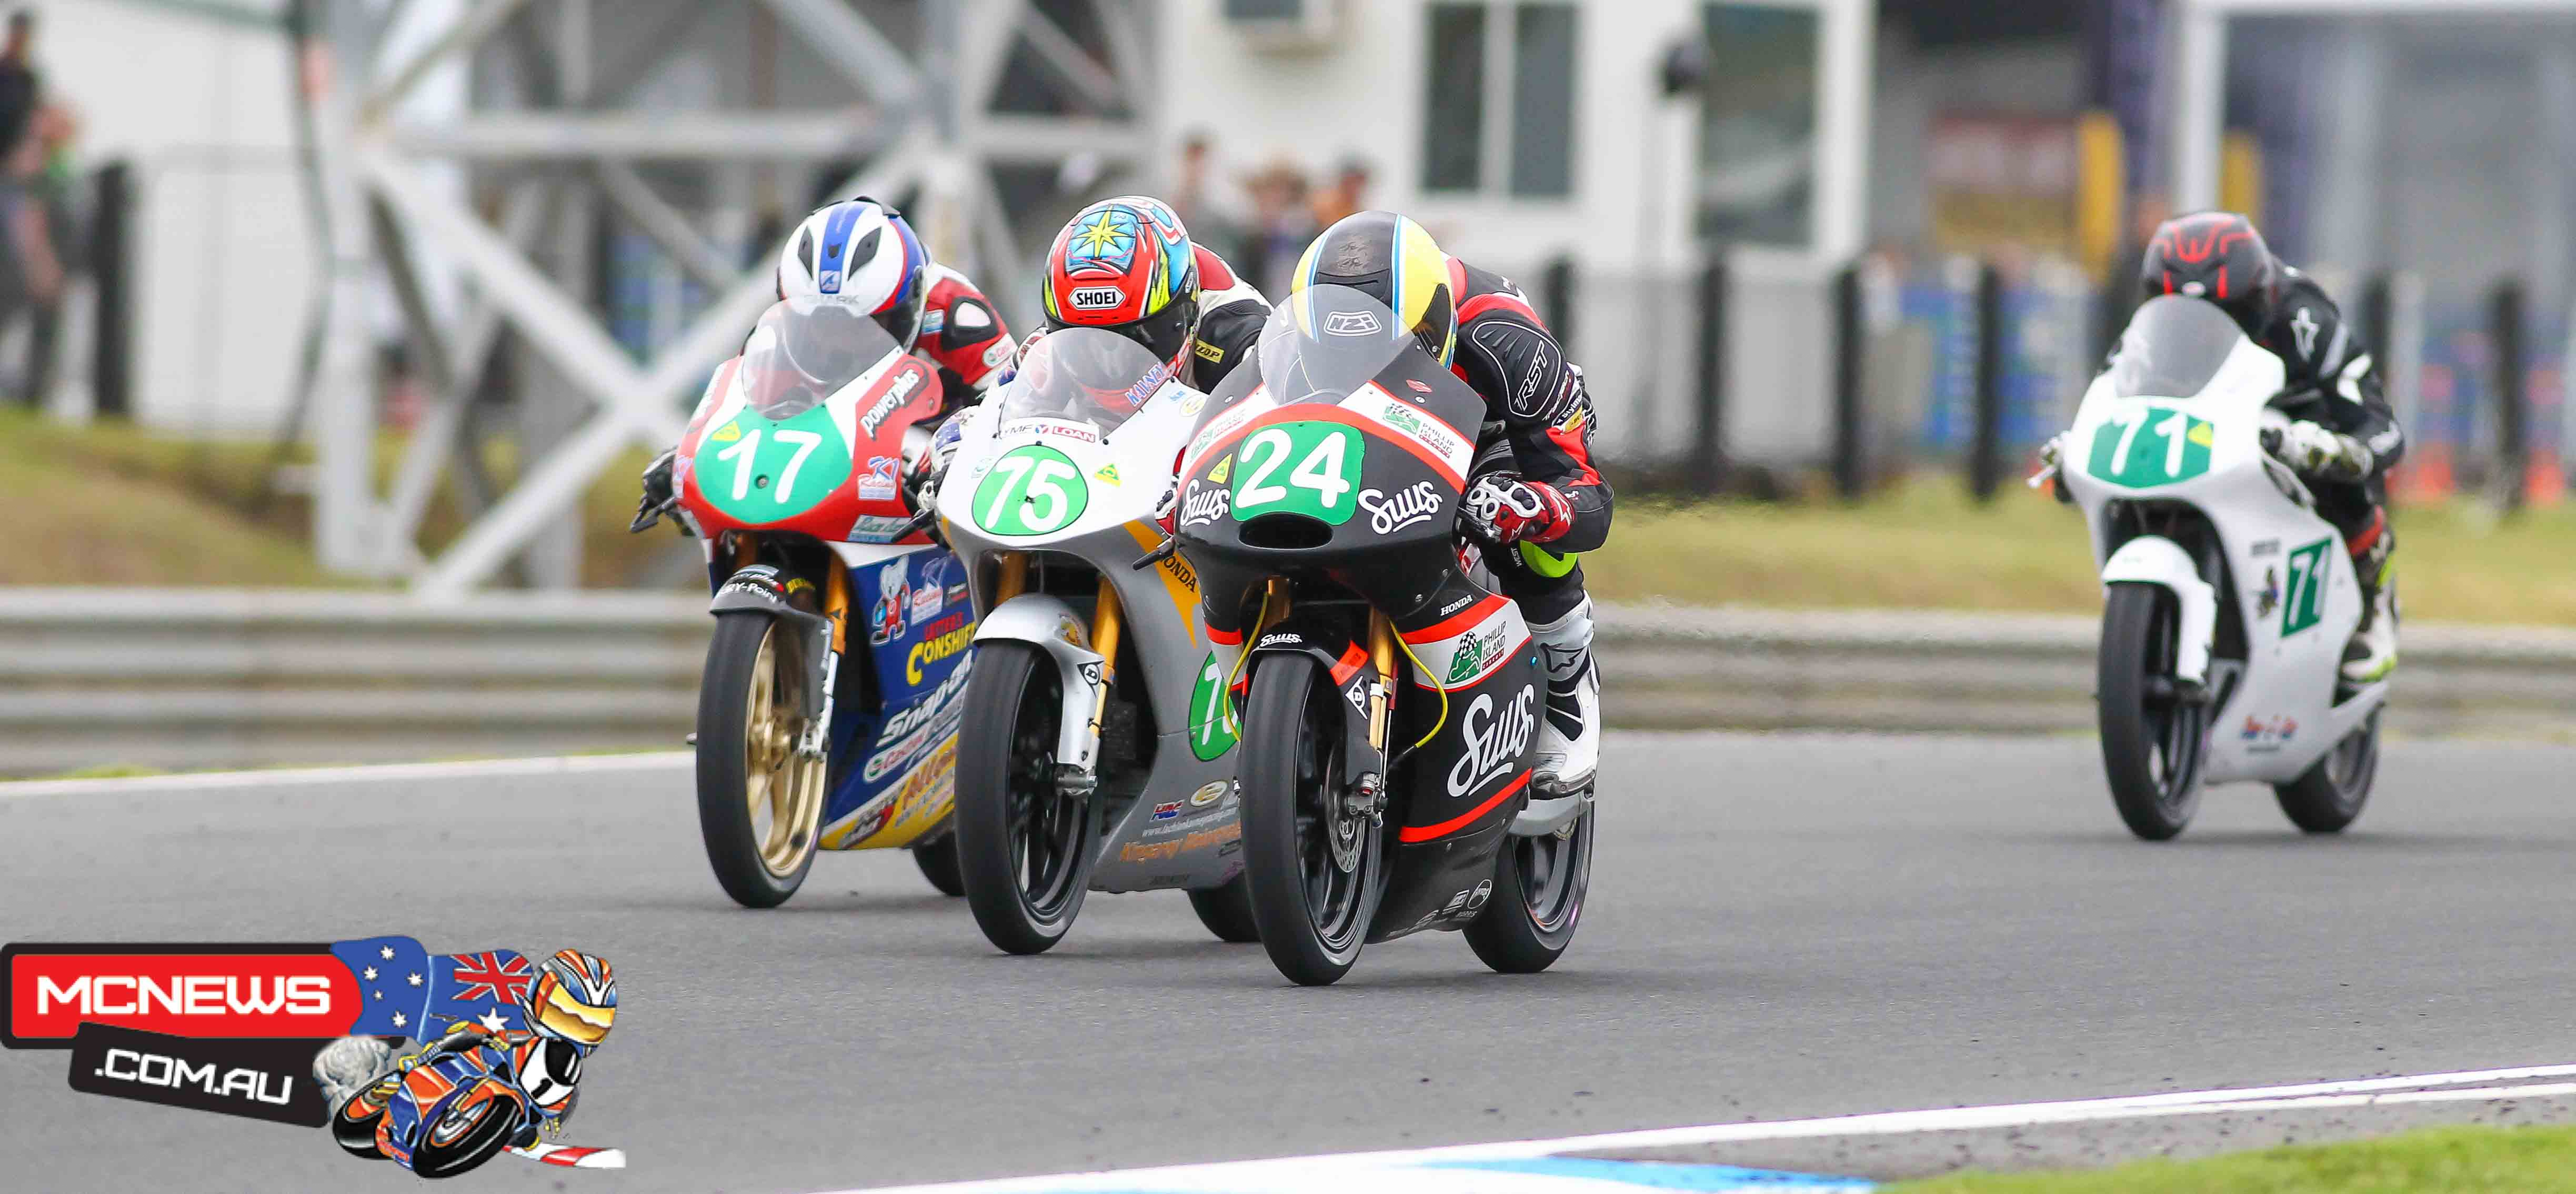 Moto3 - ASBK 2016 - Round One - Phillip Island - Image by Cameron White